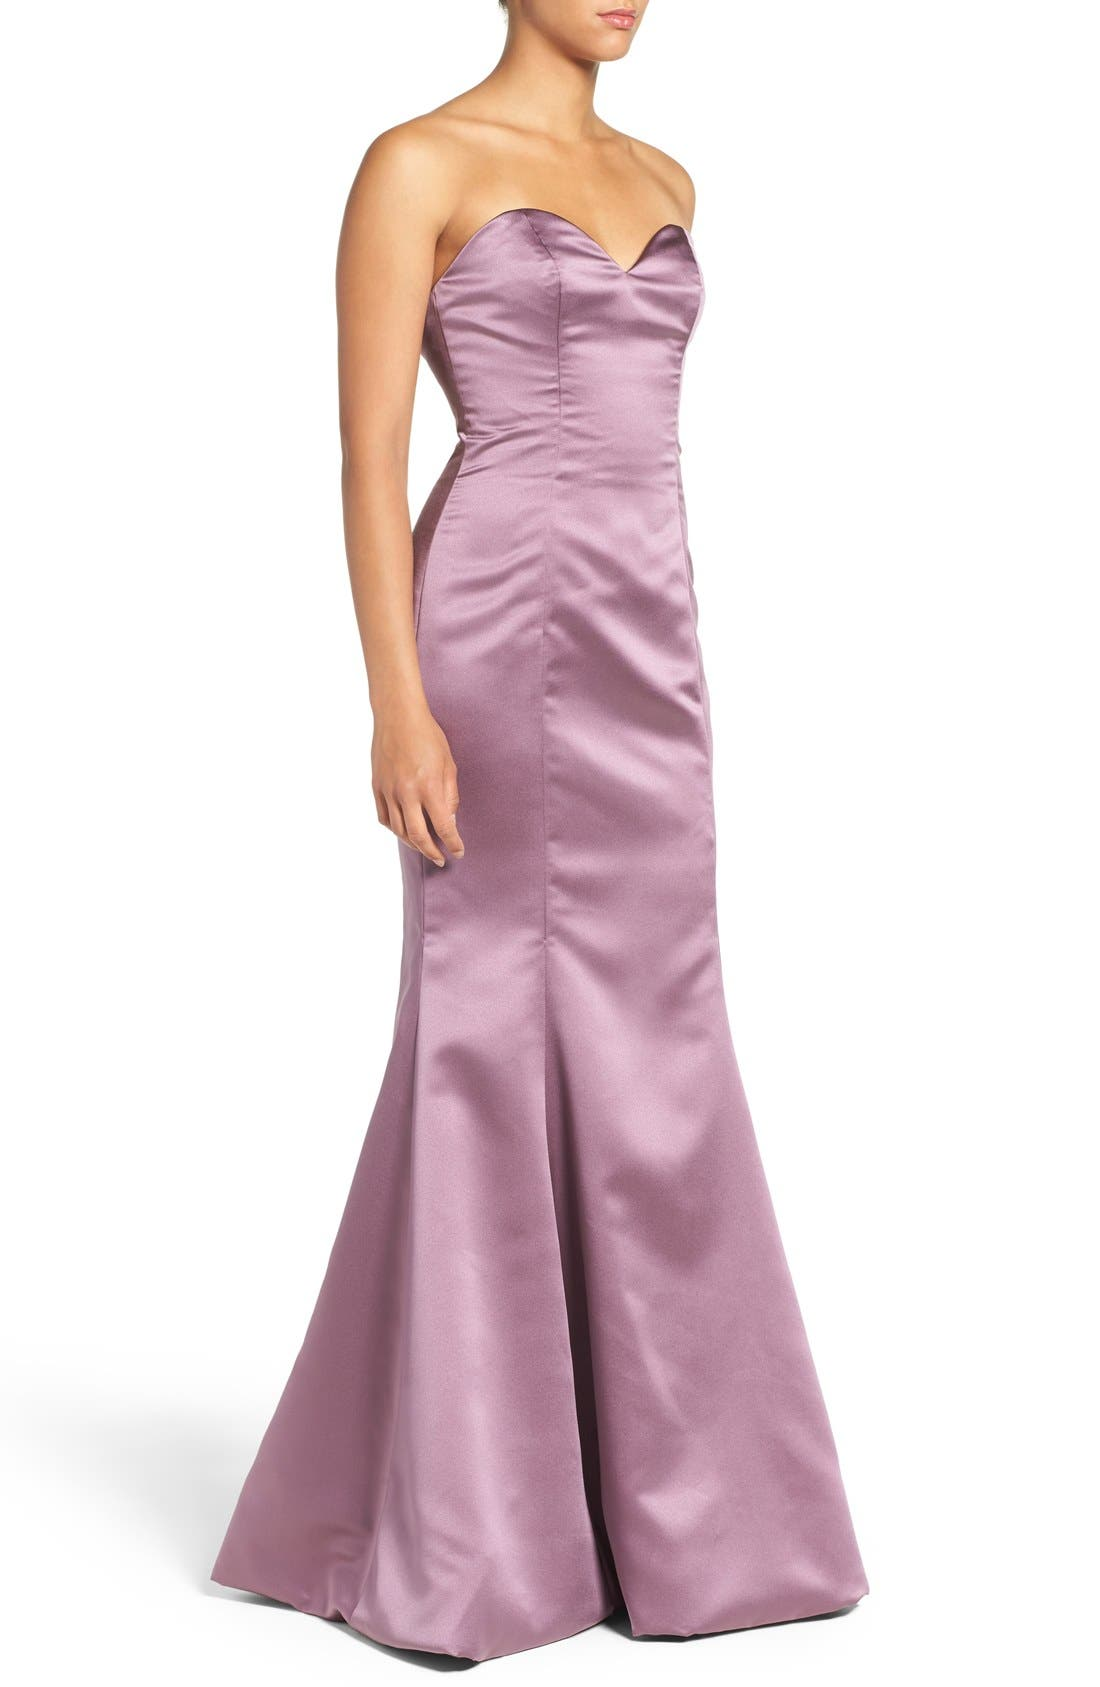 Alternate Image 3  - Hayley Paige Occasions Strapless Satin Trumpet Gown